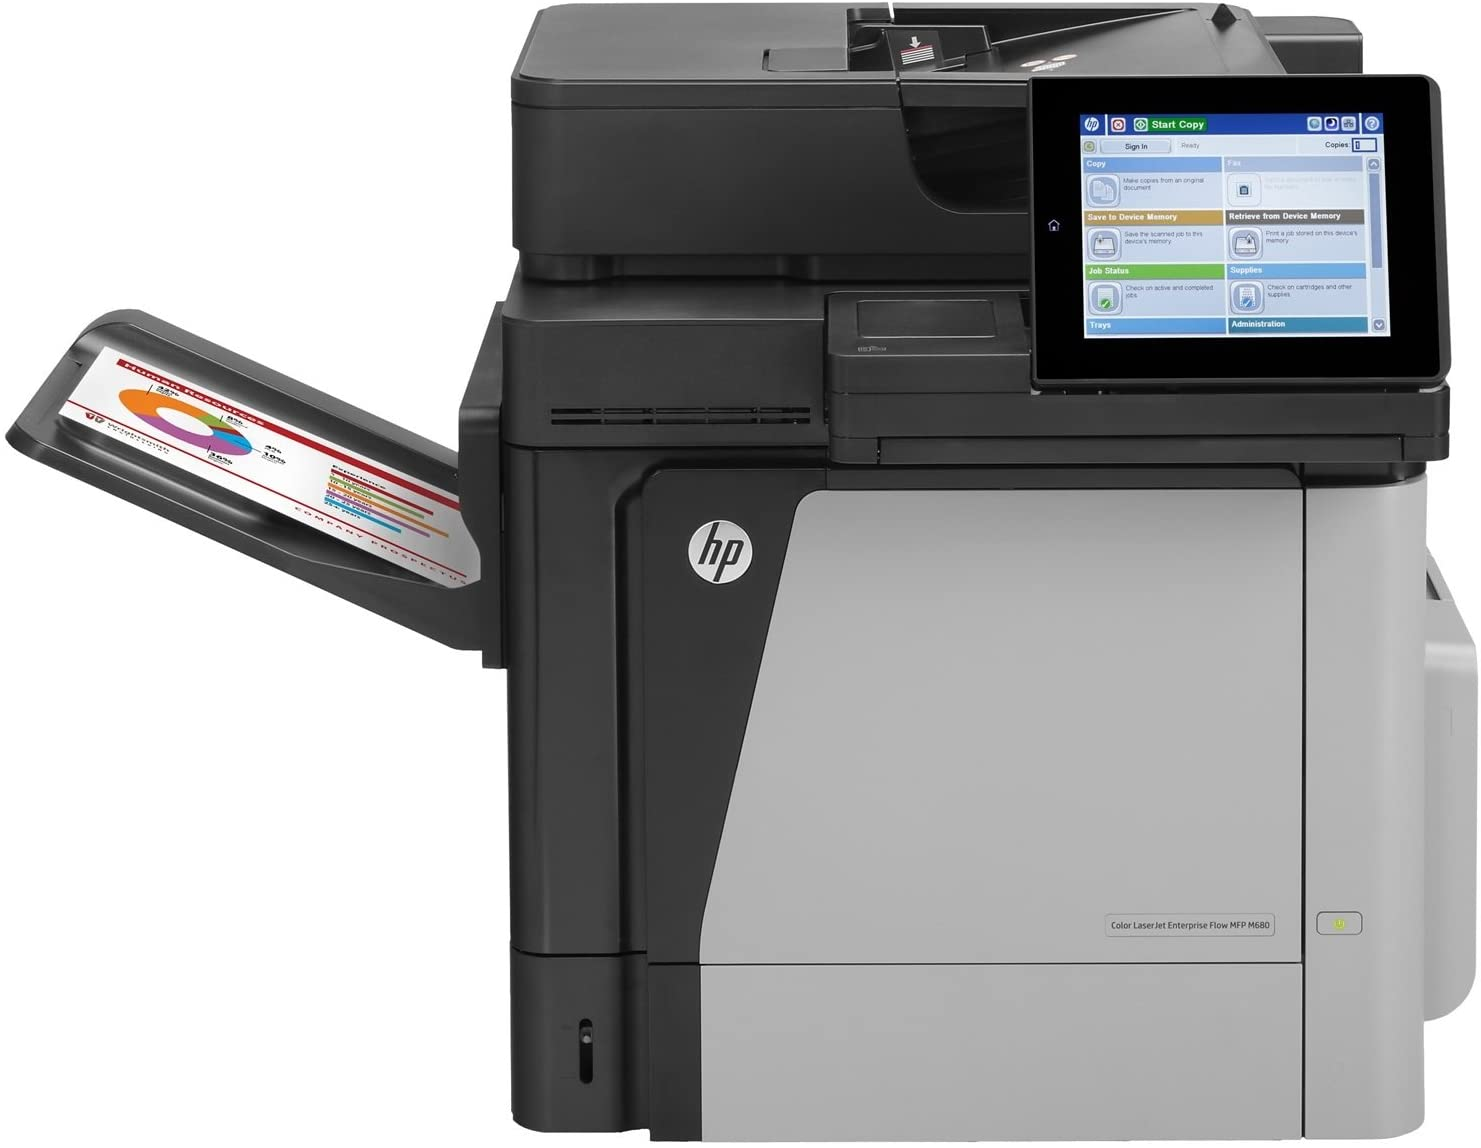 HP Color LaserJet Managed M680dnm Color Laser MFP, Refurbished (L3U47A)